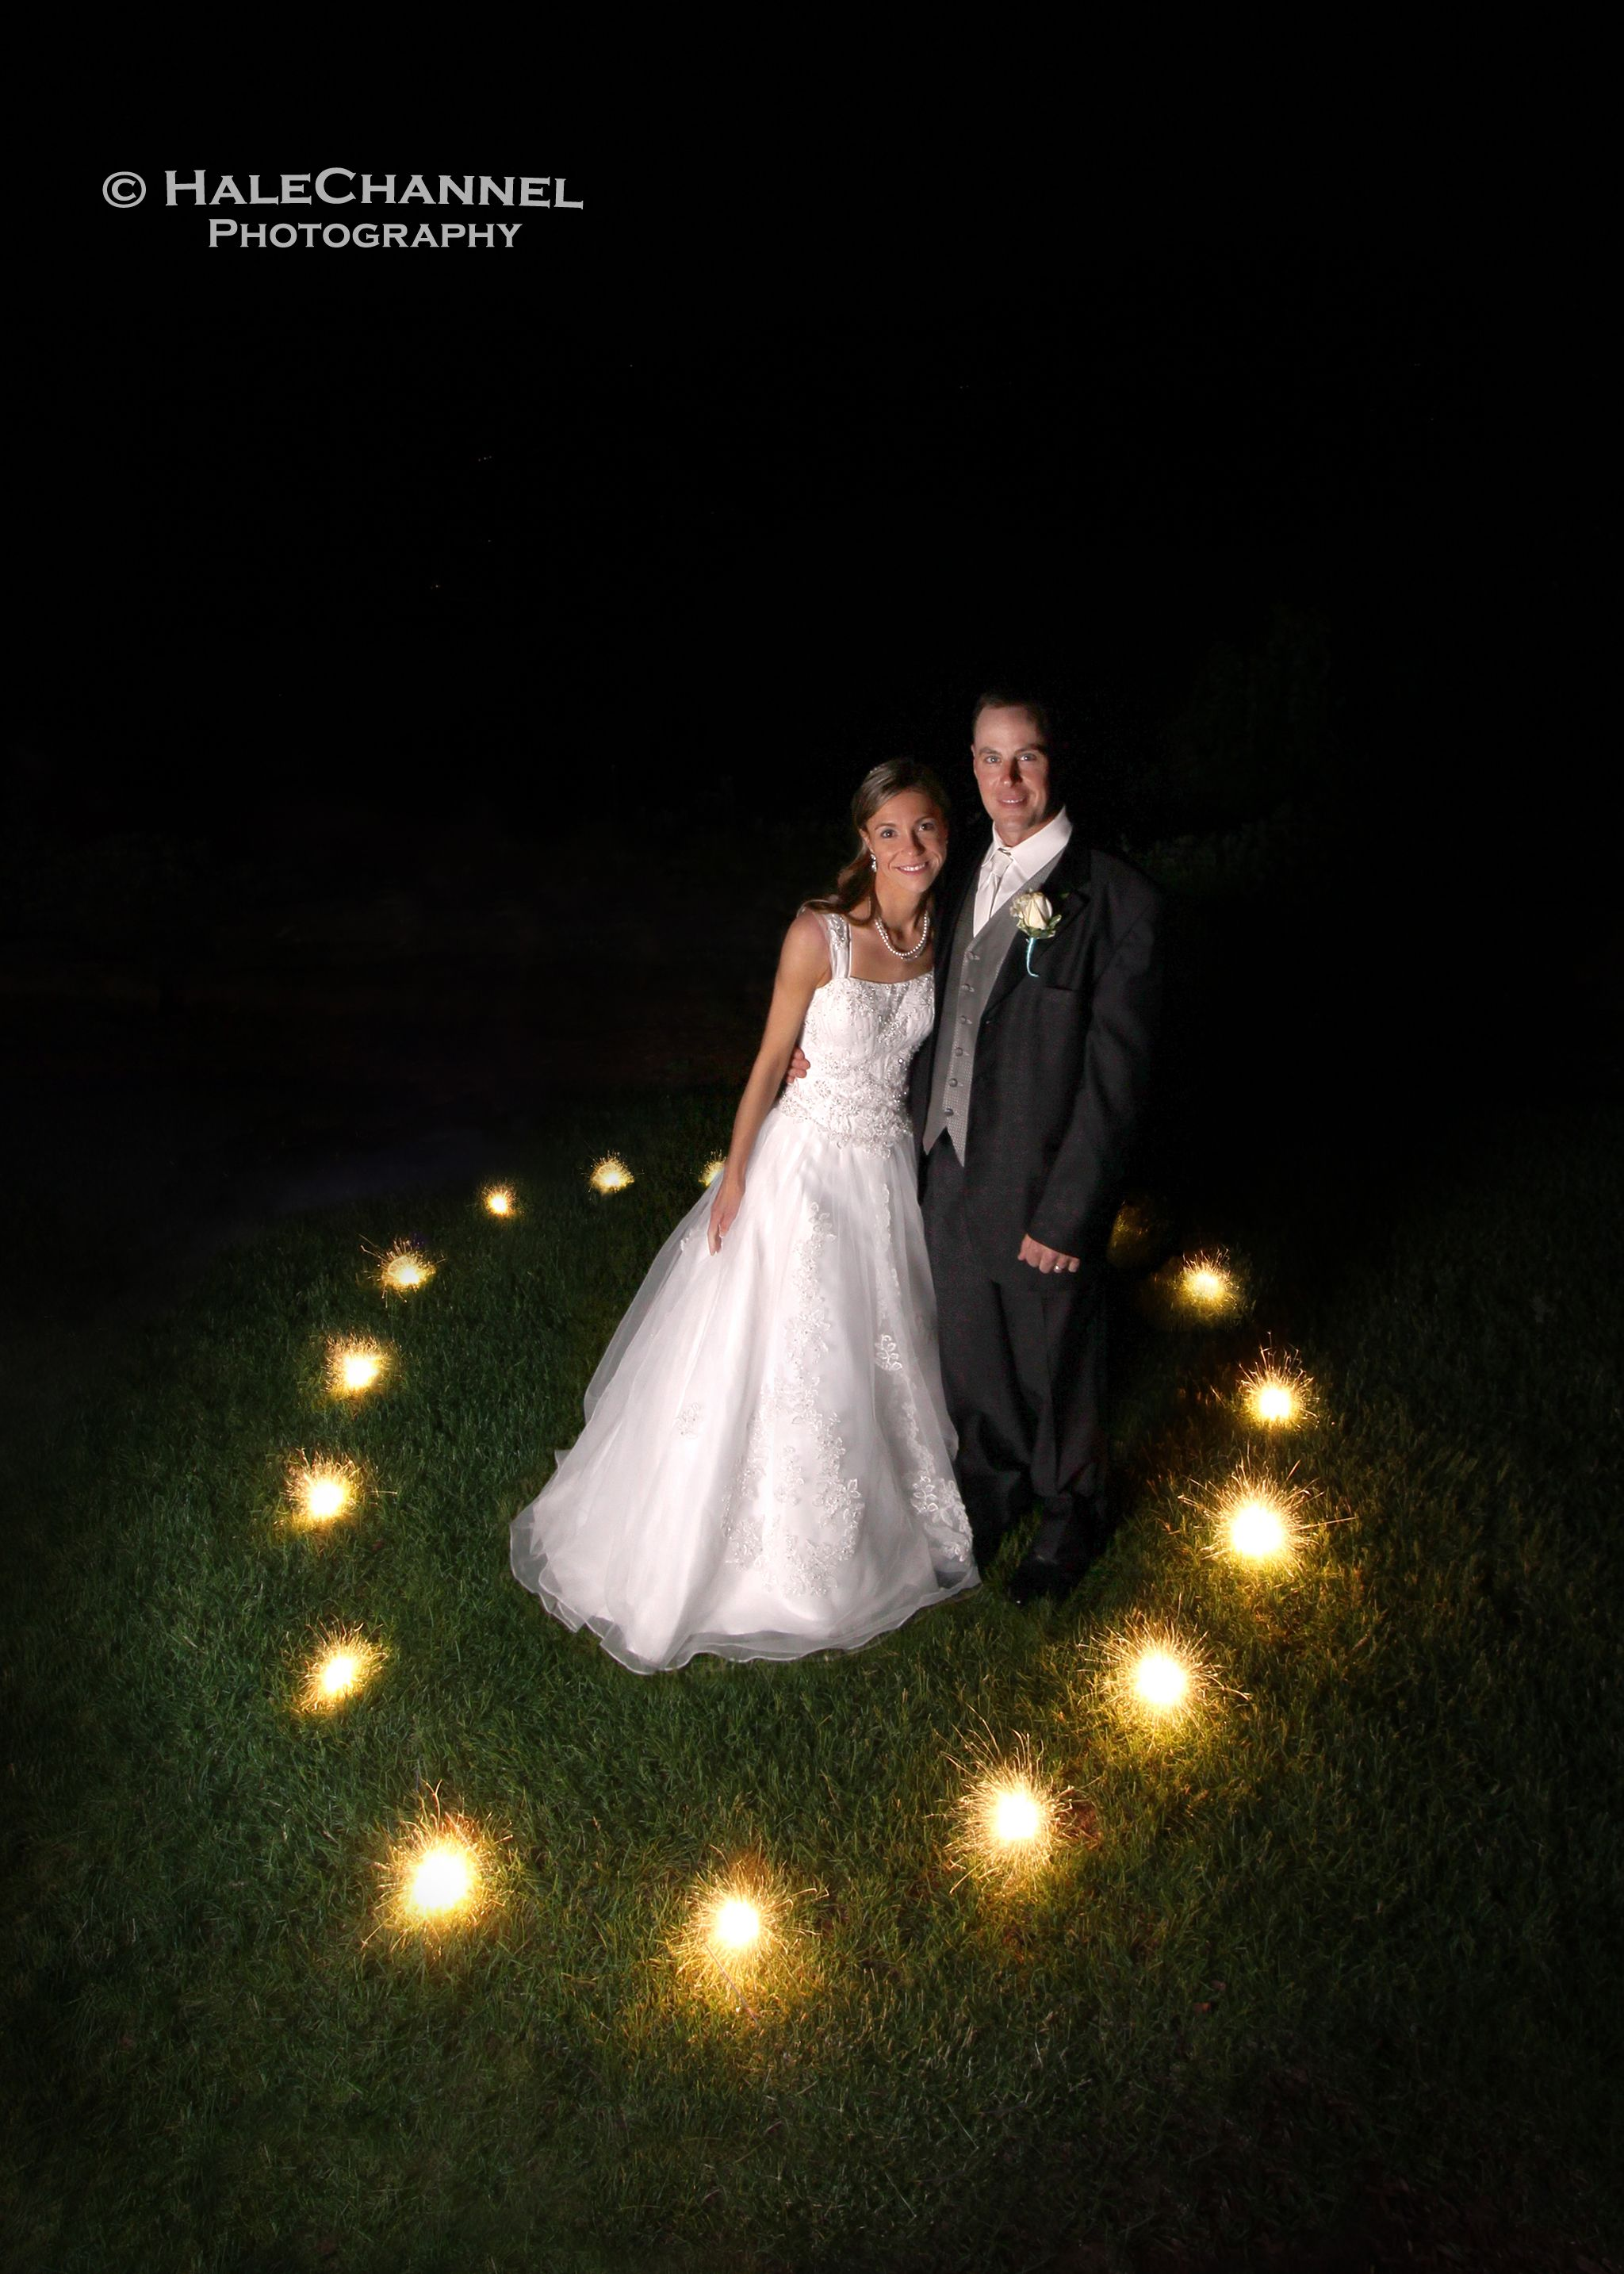 Wedding Sparklers Fun Sparkler Photos Weddings Bridal Bride Groom Poses Pose Night New Cool Popular